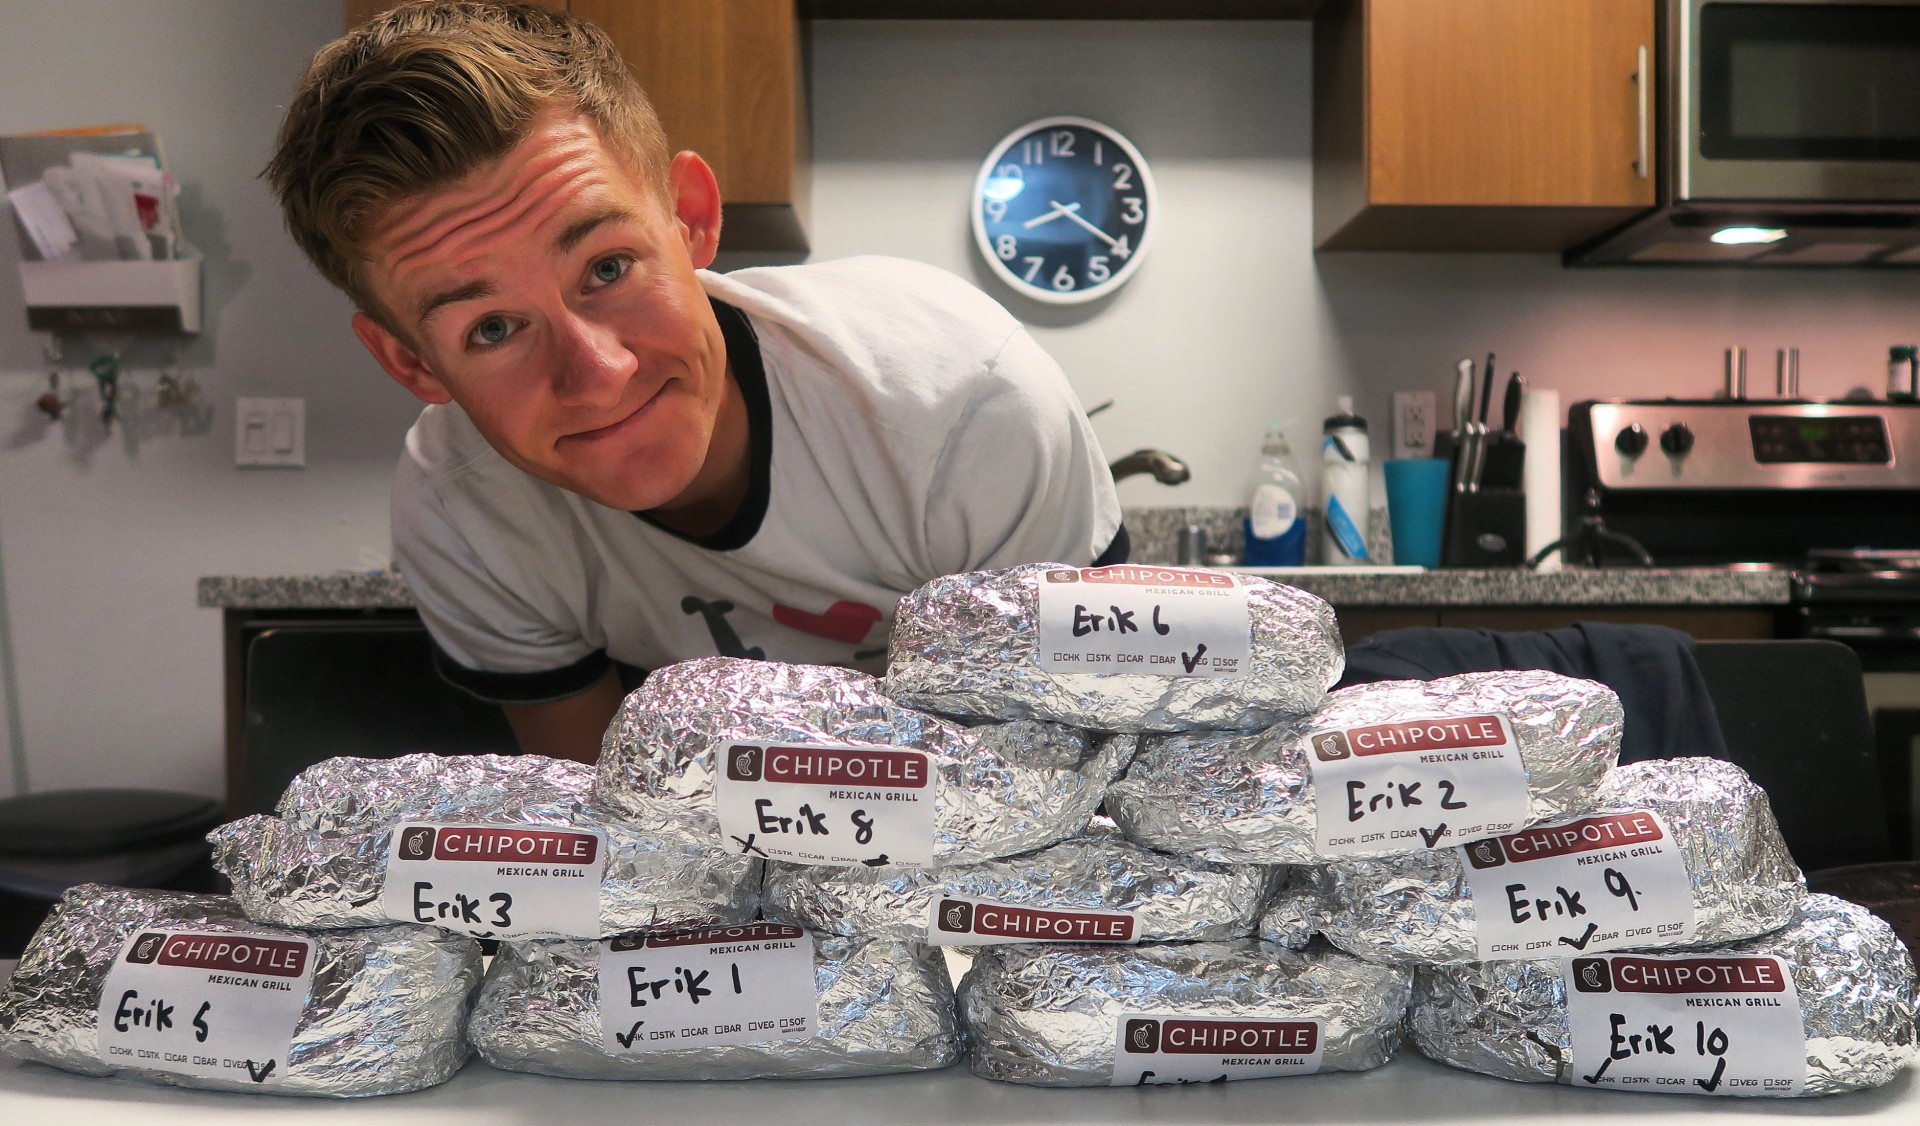 CSUSM alumnus Erik Lamkin, better known as Erik the Electric on social media, took on a Chipotle burrito challenge in 2015, attempting to polish off 10 burritos in an hour.